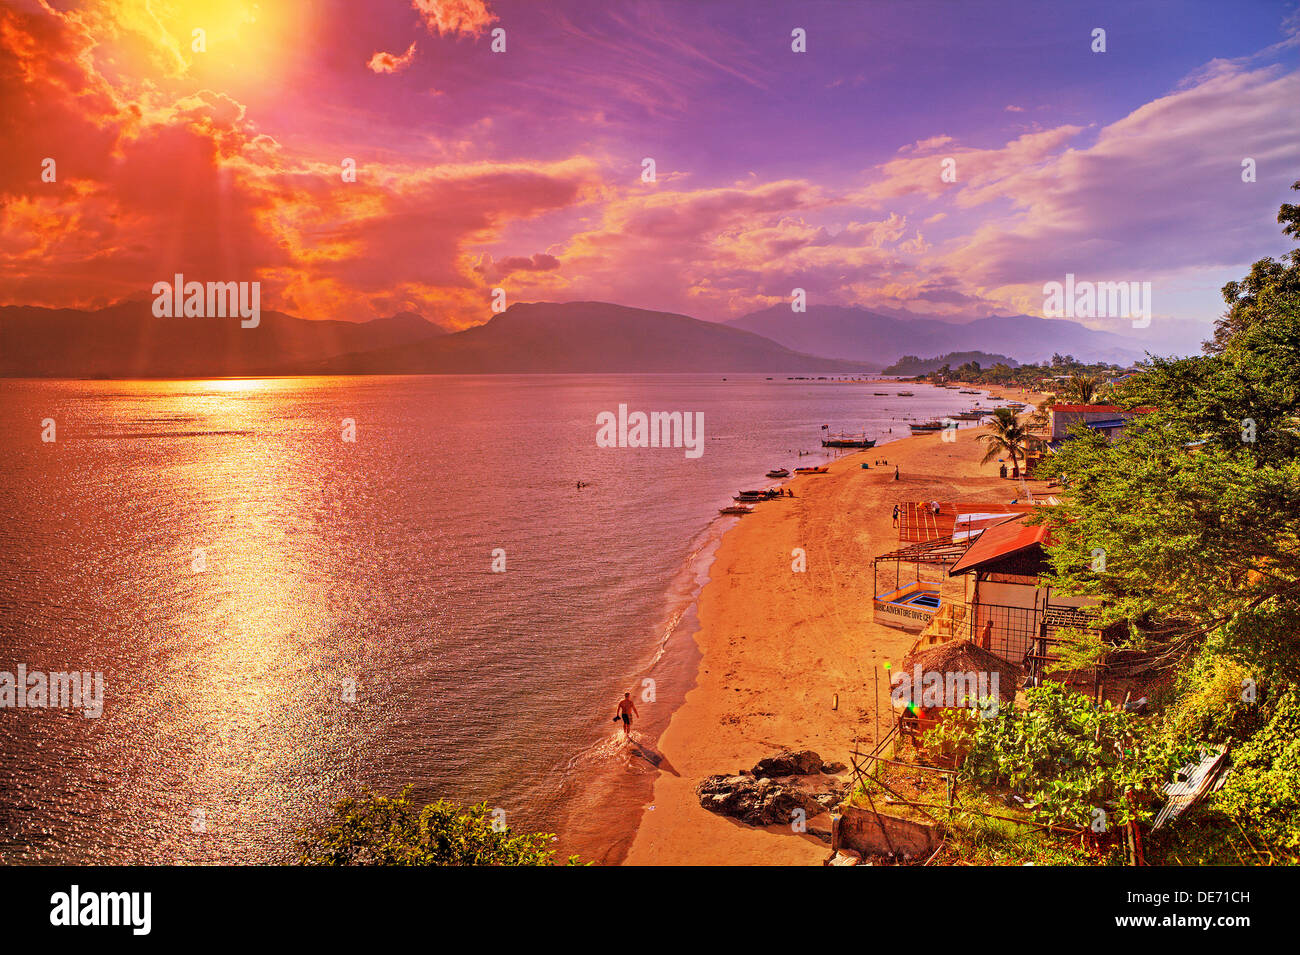 Vibrant colors of sunset over Subic Bay, Luzon Island, Philippines. - Stock Image